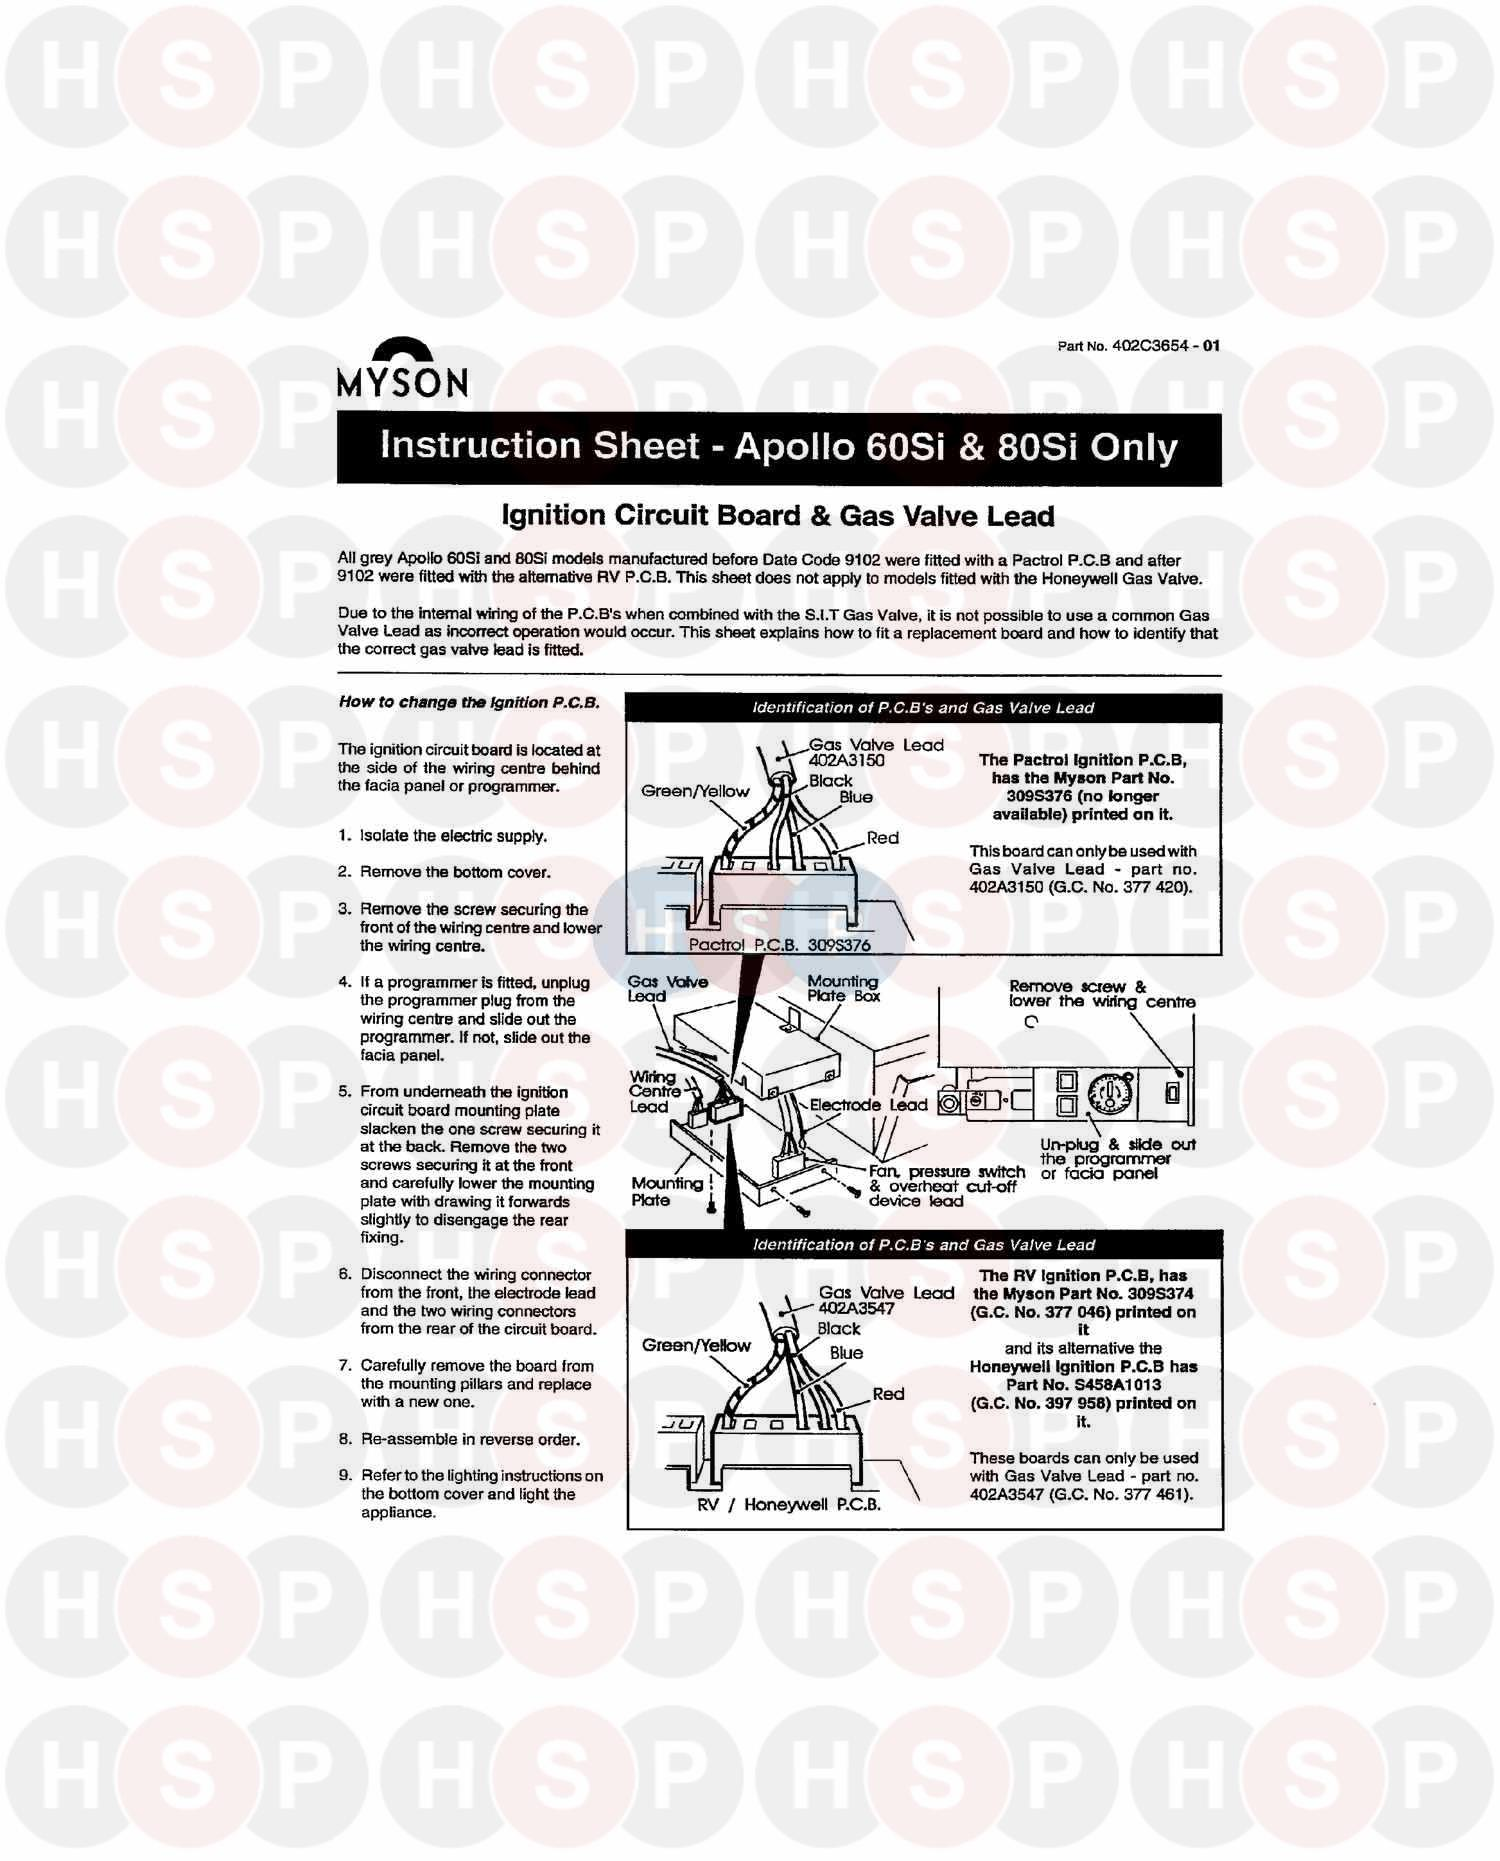 Thorn Apollo Later 80 Si 1997 Instruction Sheet Diagram Rv Slide Out Wiring Click The To Open It On A New Page